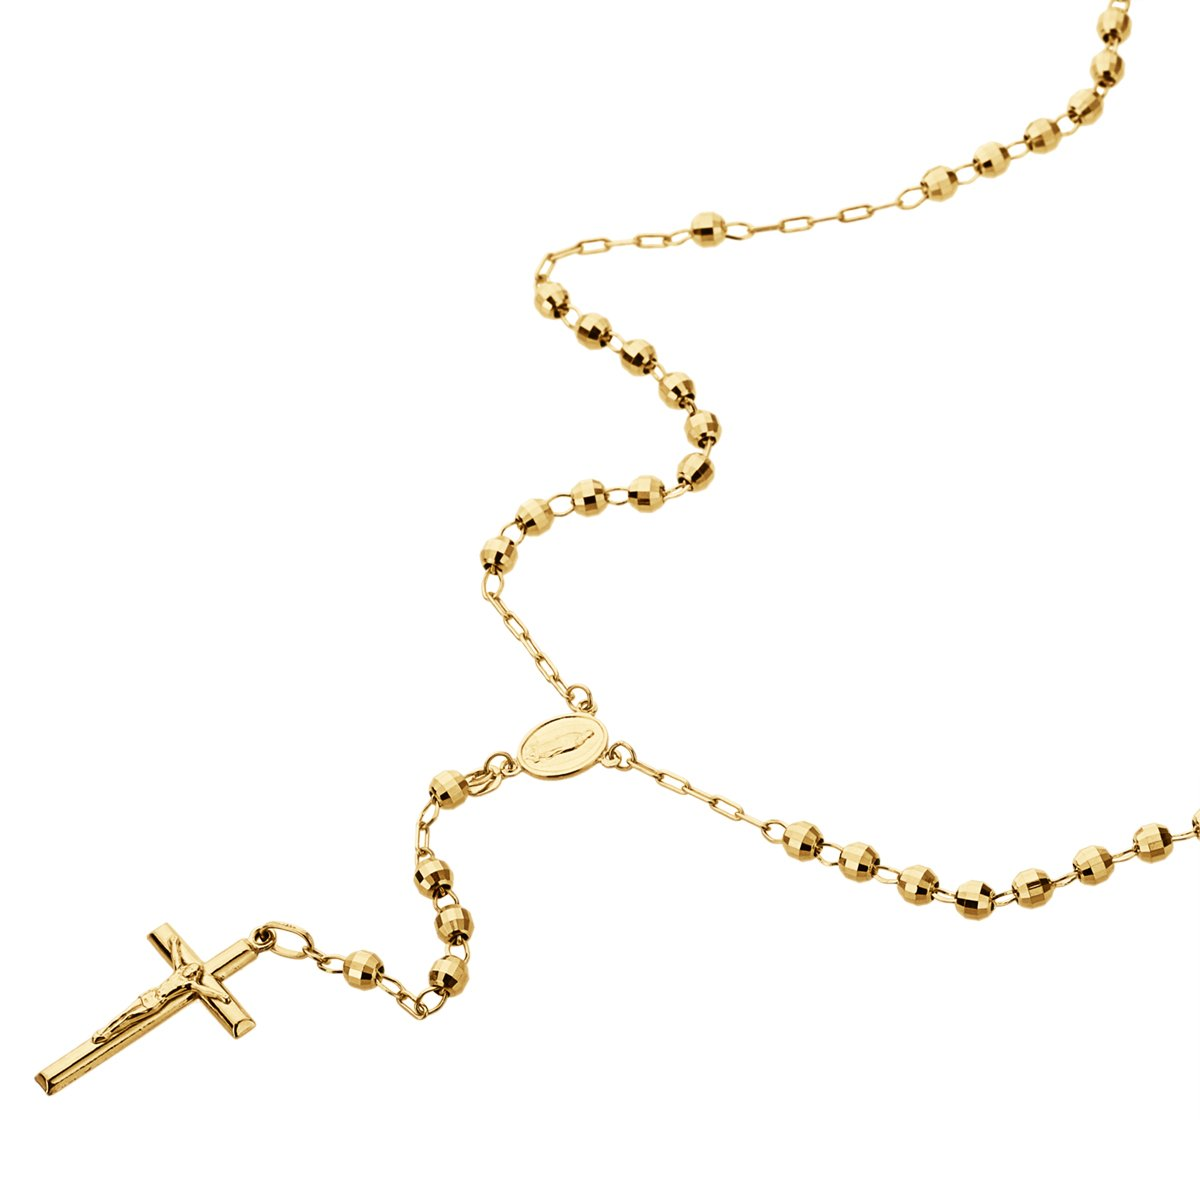 14K Gold Tri-color, Yellow or White Gold Chain 3mm DC Bead Rosary Chain Necklace (16, 18, 20, 24 Inches), 16'' by Double Accent (Image #1)